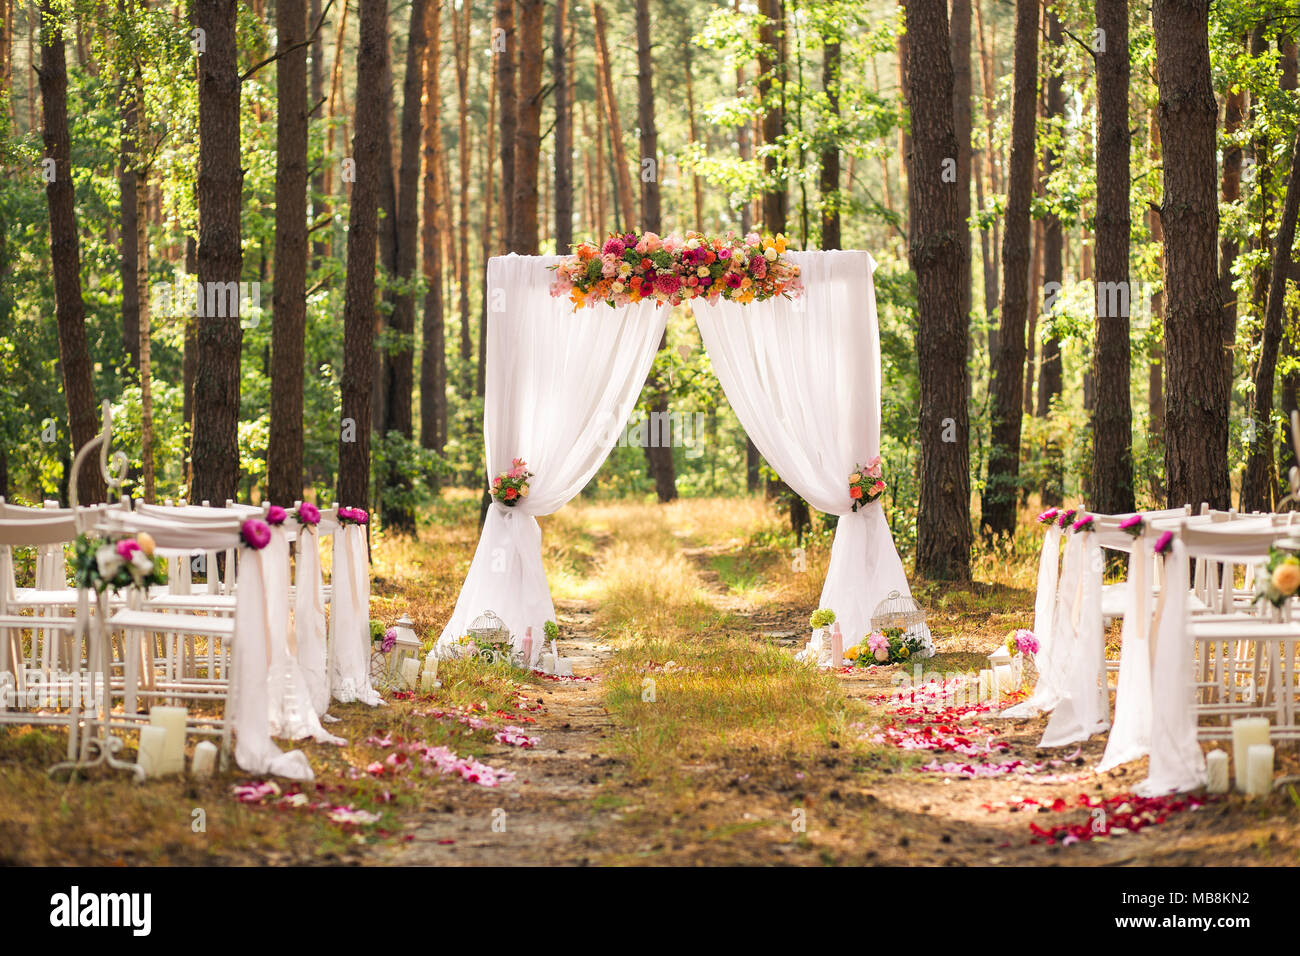 Beautiful elegant wedding decorations of place for ceremony outside beautiful elegant wedding decorations of place for ceremony outside in old wood with huge pines trees horizontal color picture junglespirit Choice Image